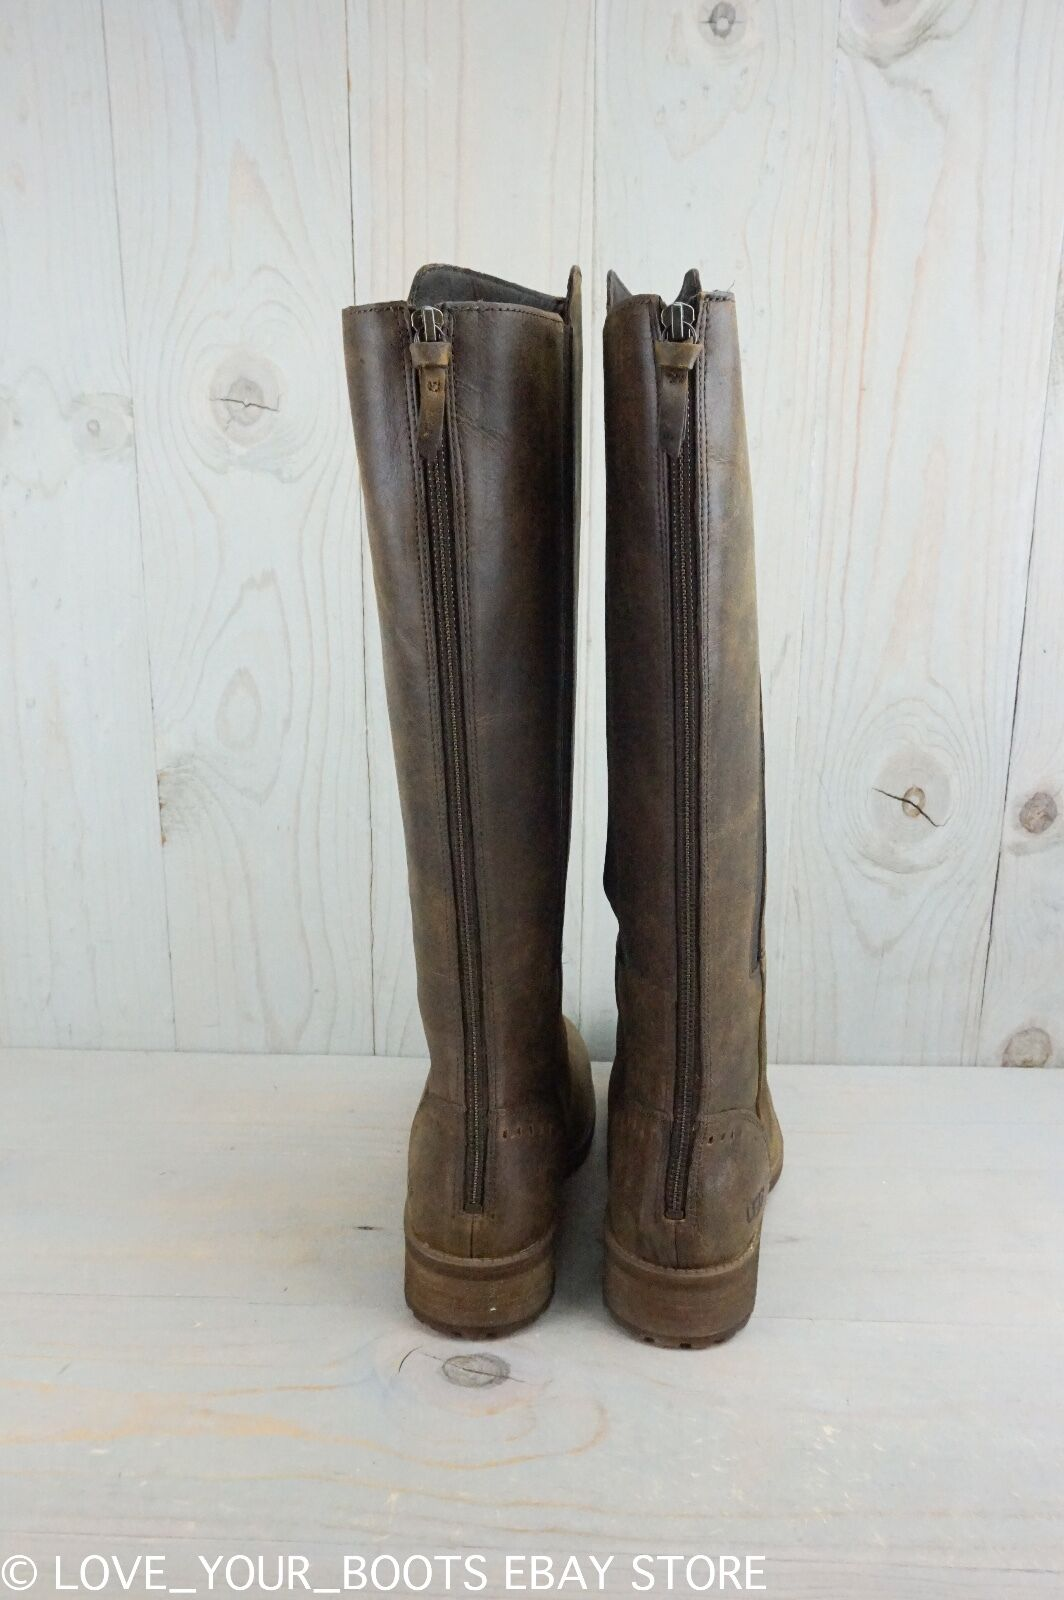 UGG VINSON STOUT LEATHER TALL RIDING BOOT REAR ZIPPER BOOTS WOMENS US 6.5 NIB